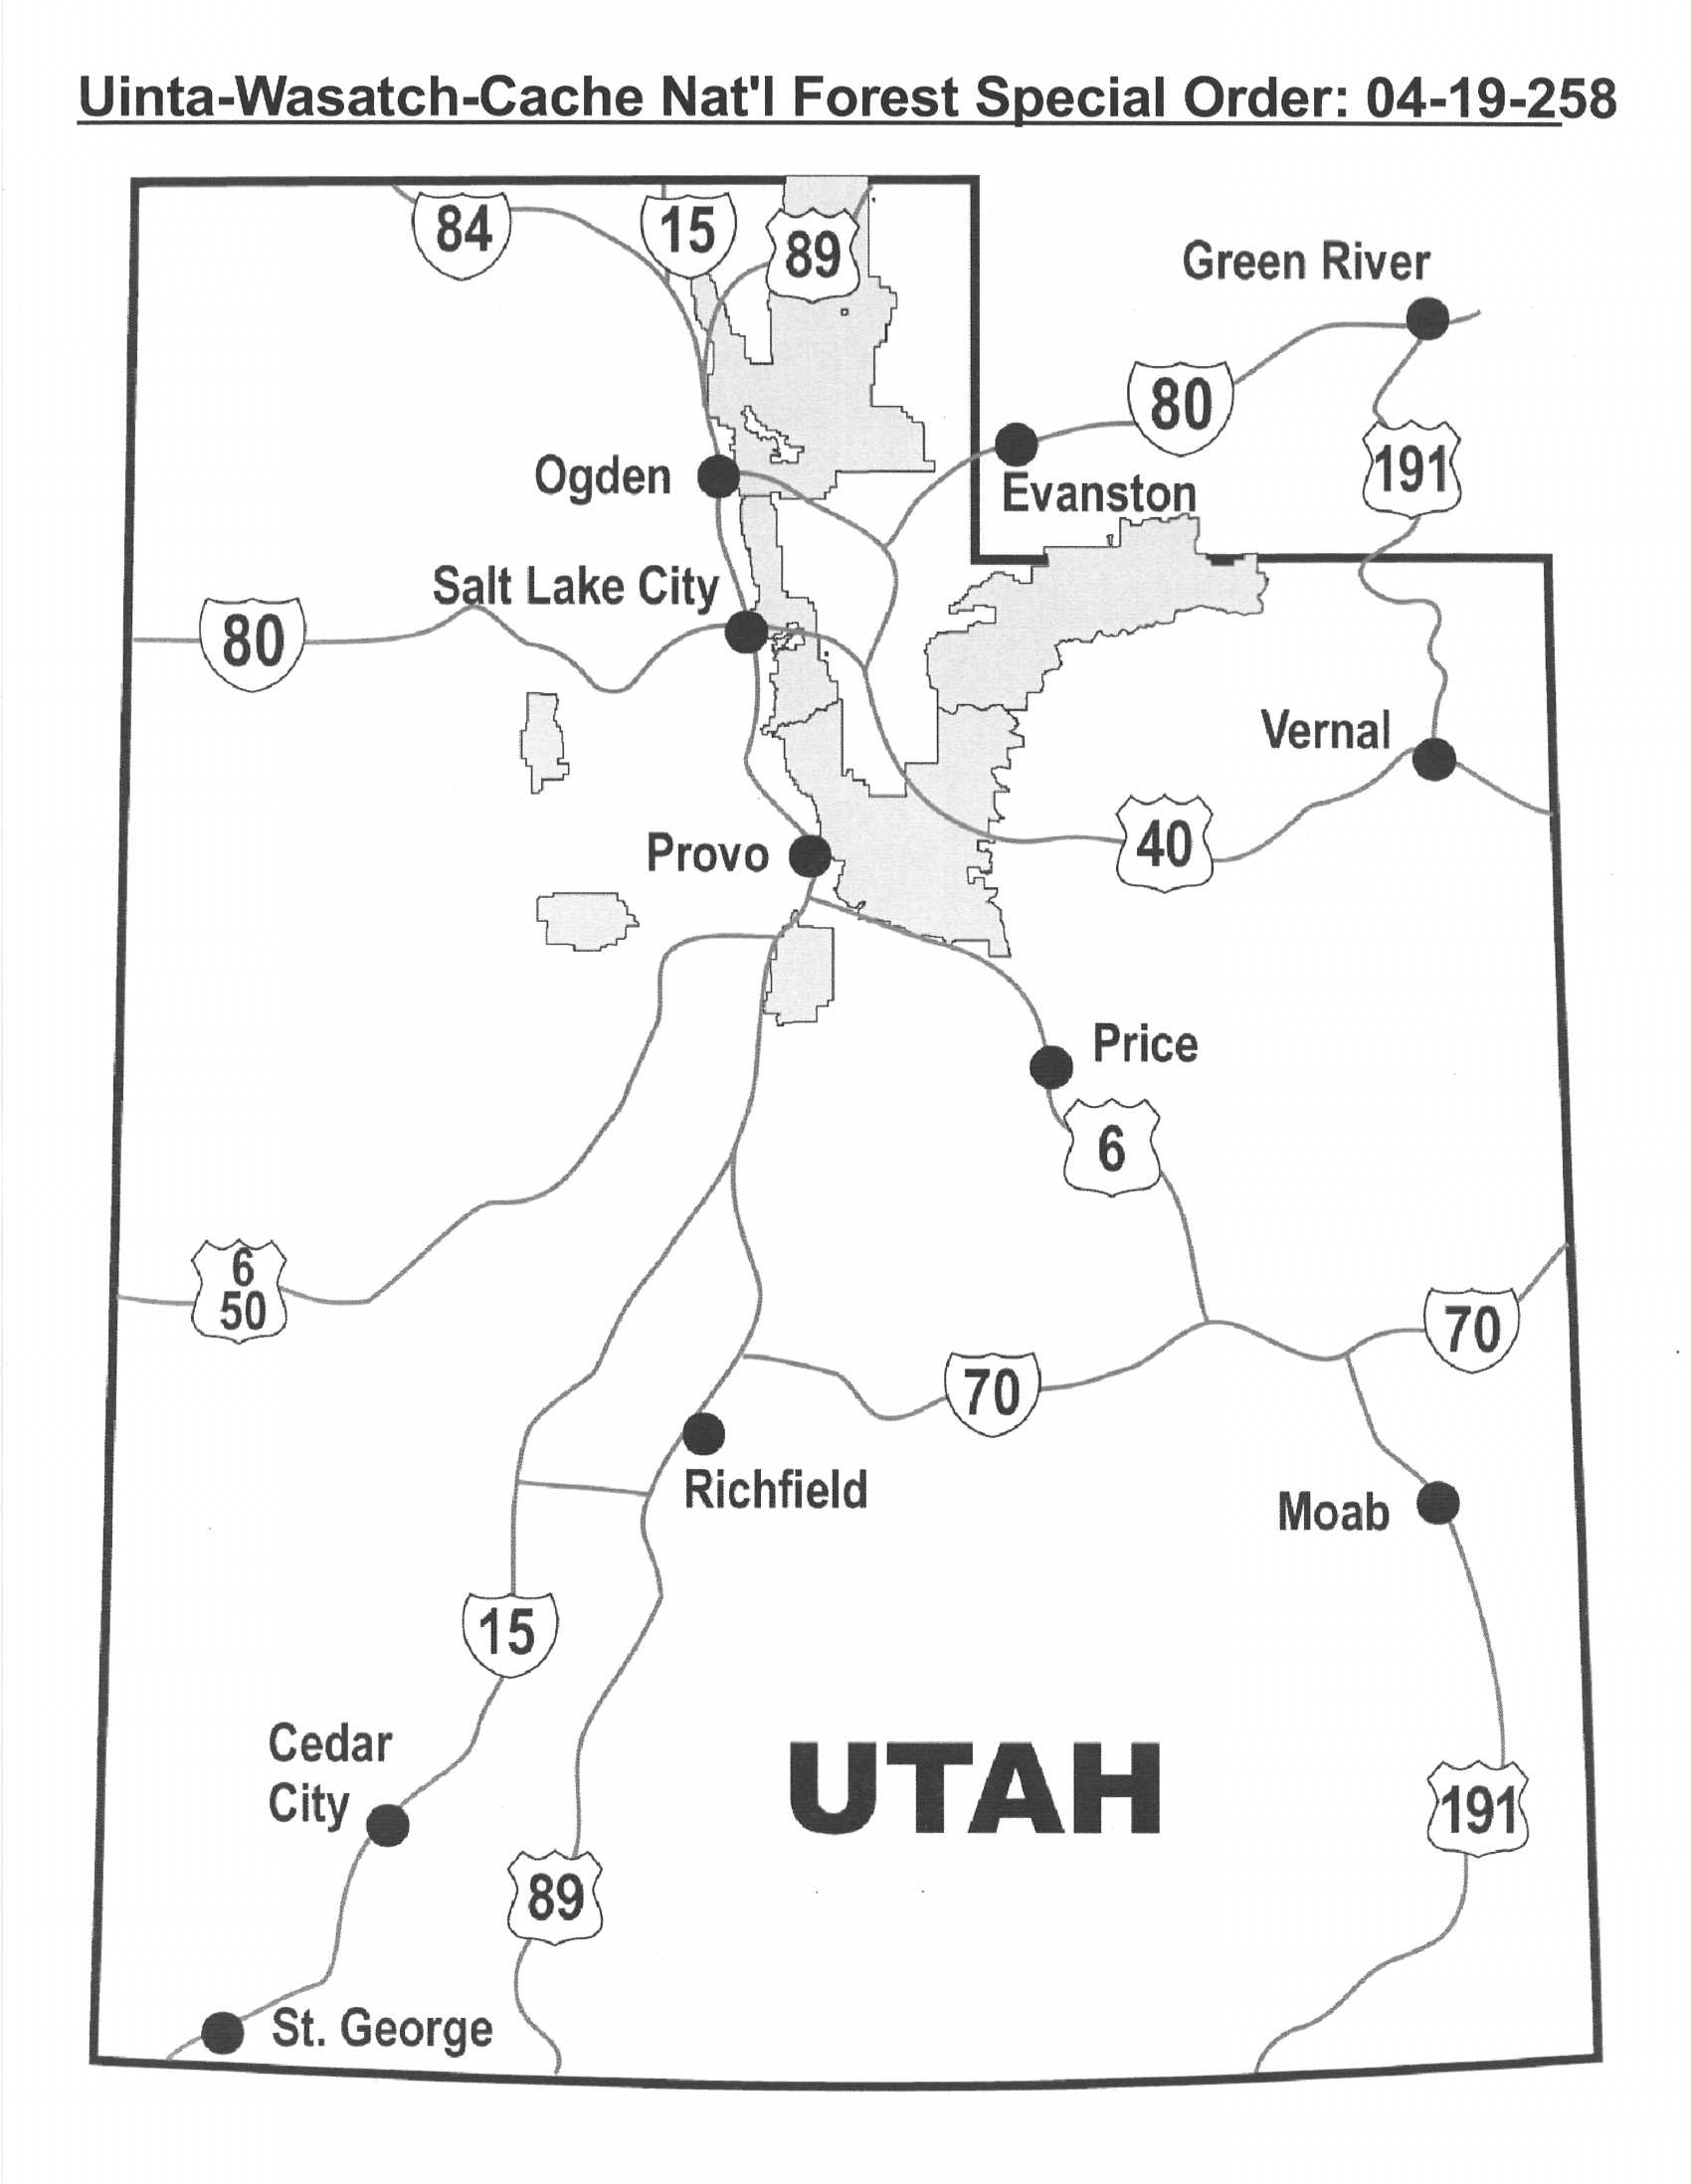 Uinta-Wasatch-Cache National Forest - Alerts & Notices